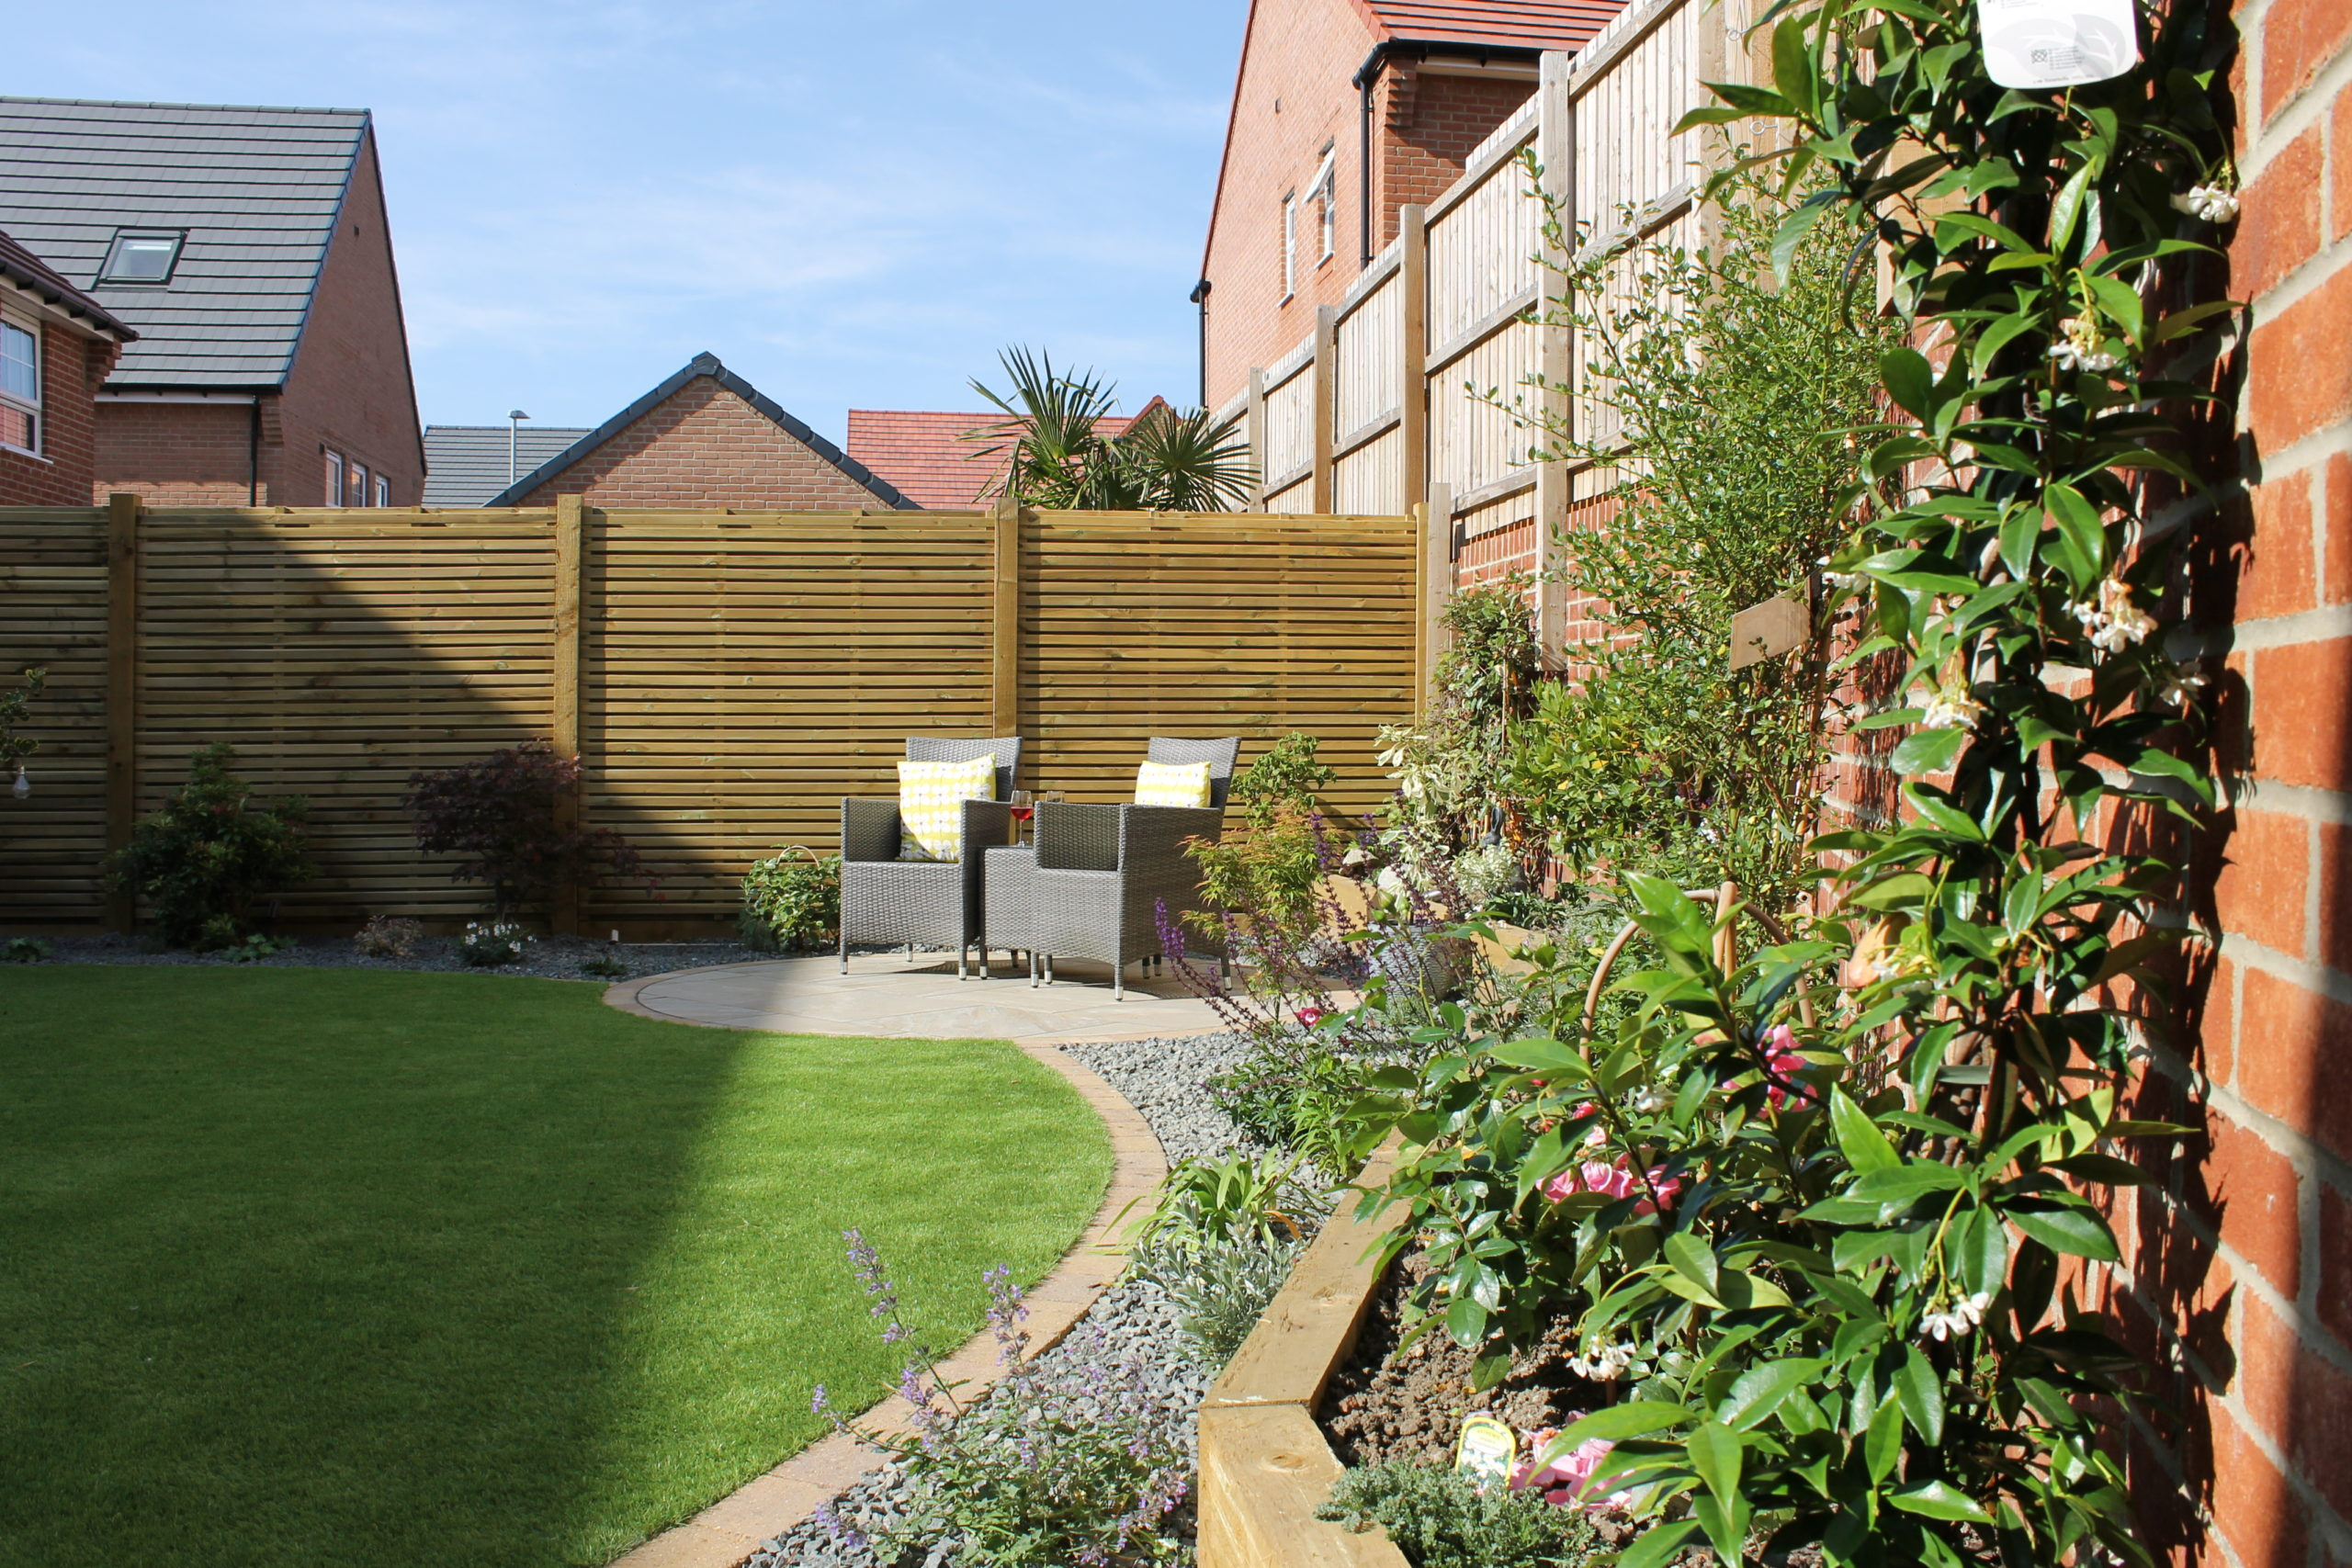 Corner of a garden with a brown fence, plants and grey chairs